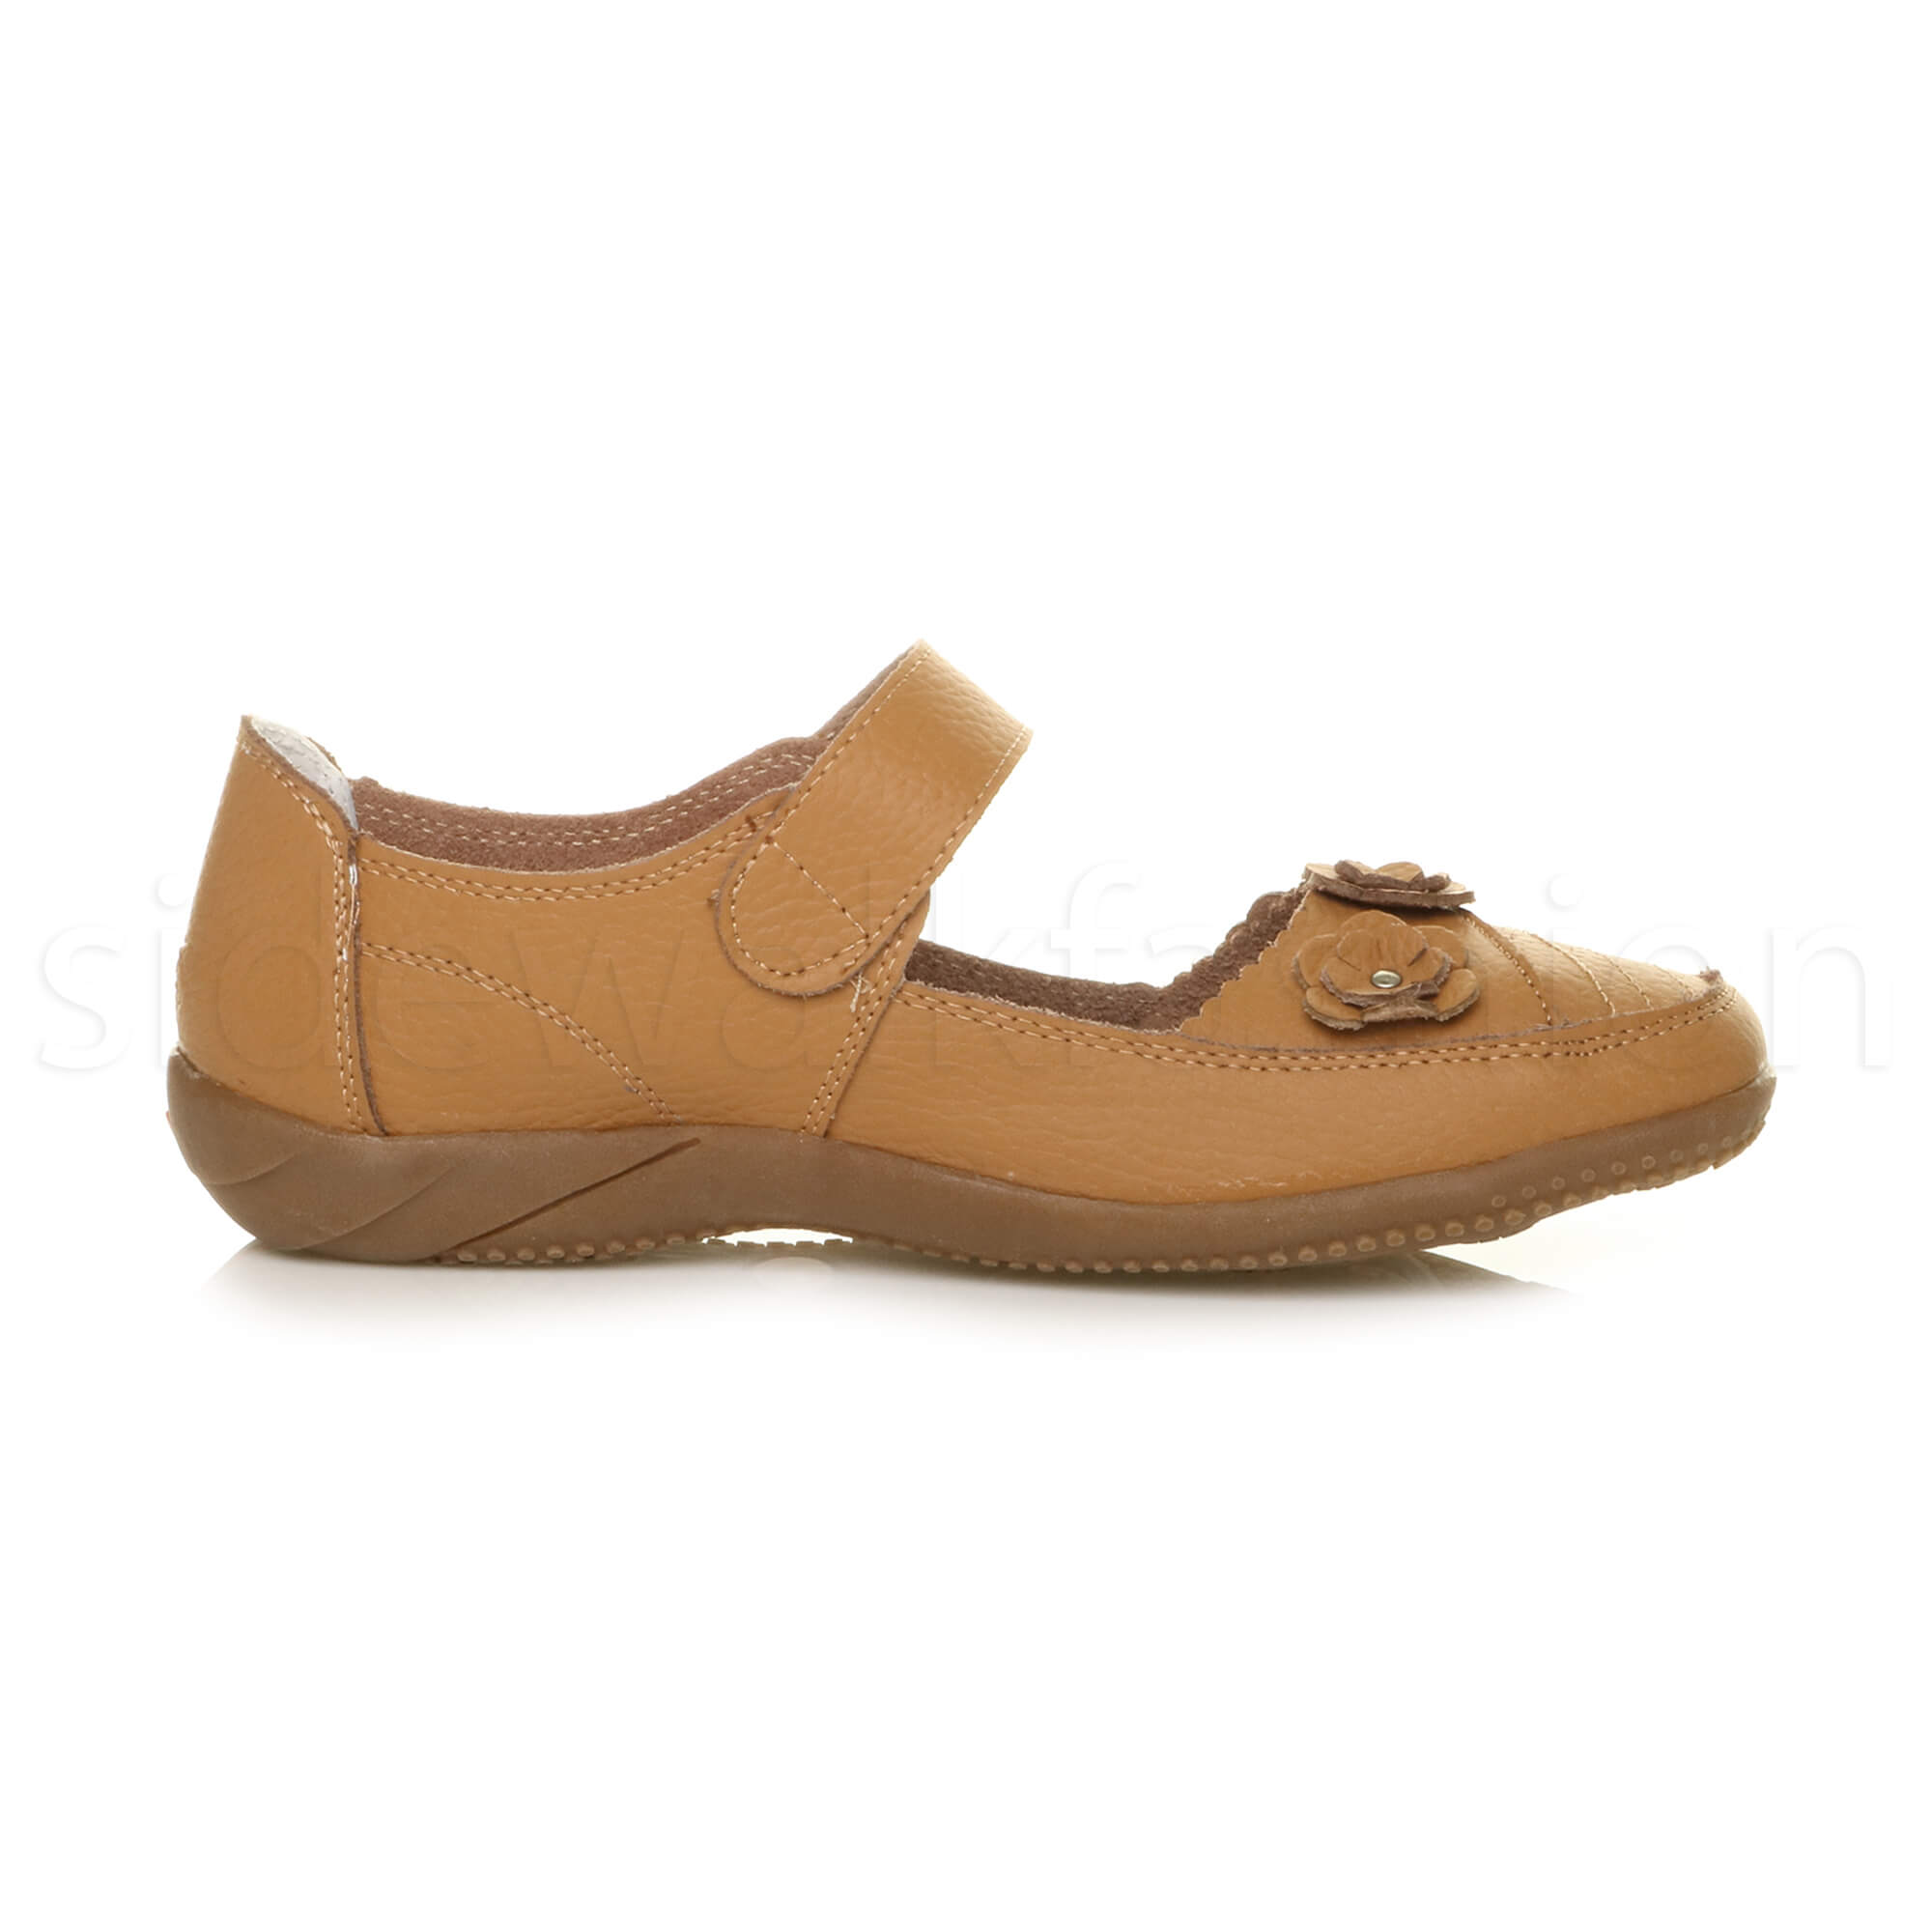 Womens-ladies-leather-comfort-walking-casual-sandals-mary-jane-strap-shoes-size thumbnail 19